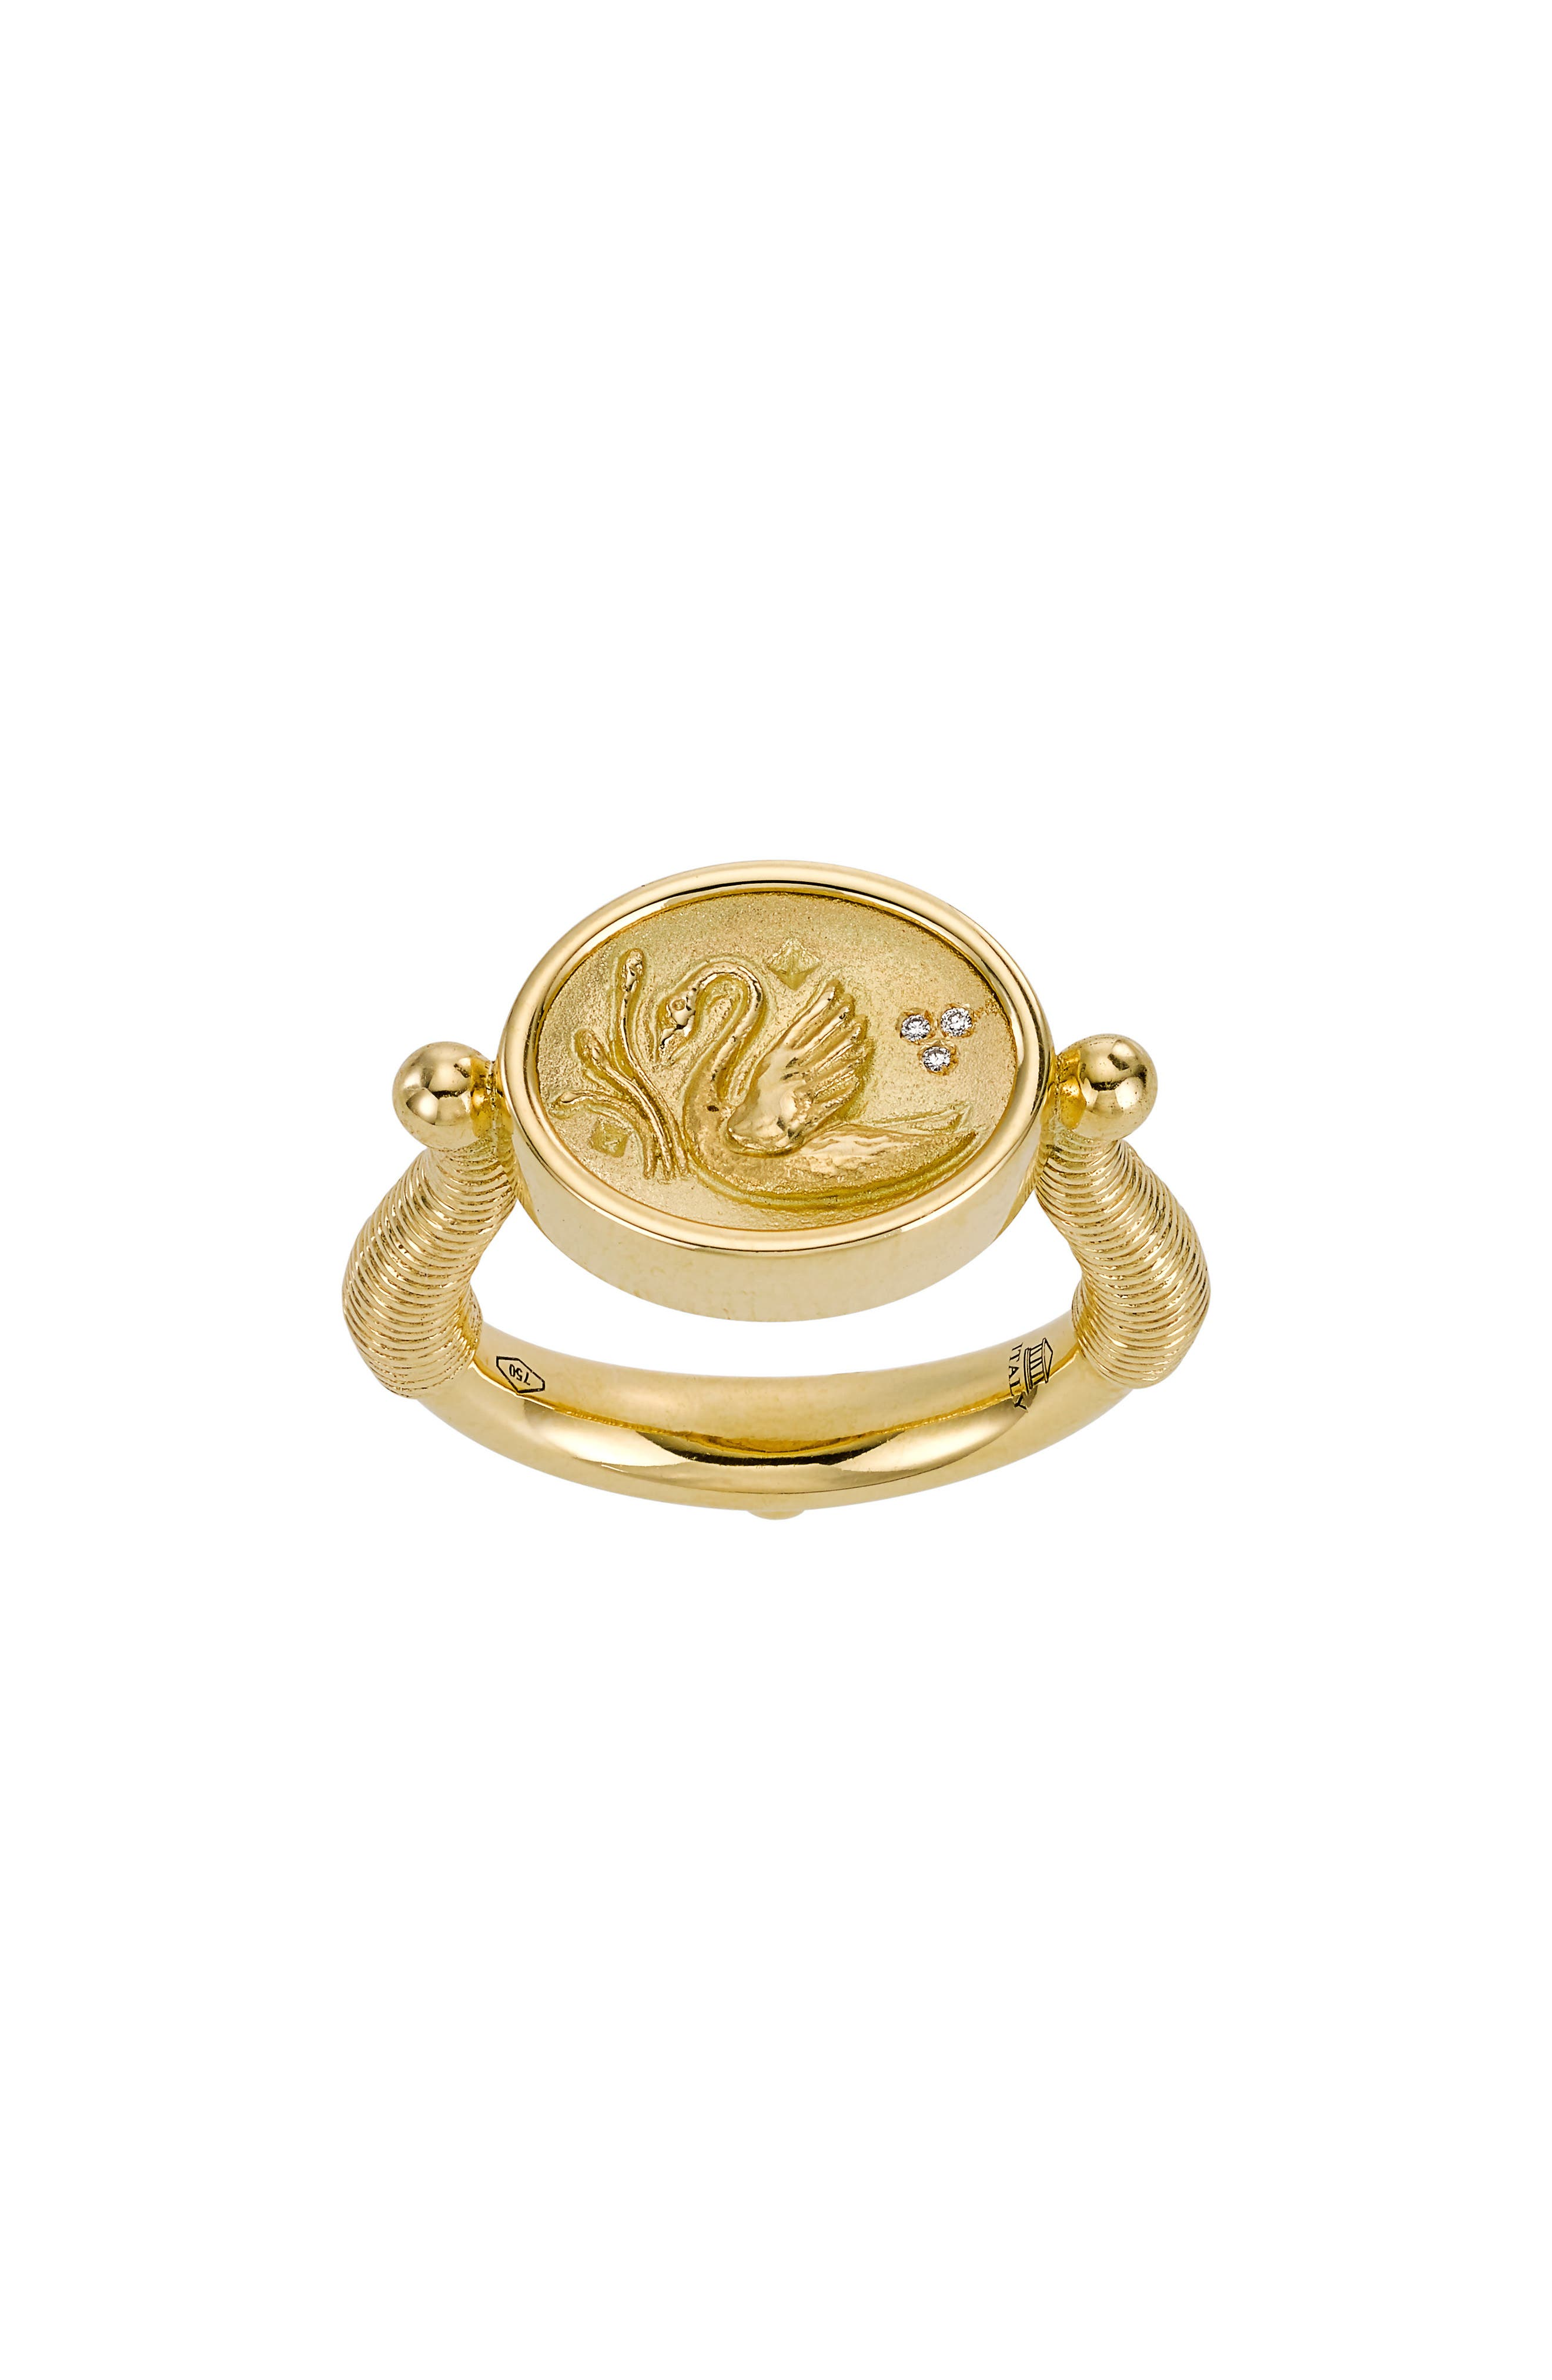 Main Image - Temple St. Clair Object Trouvé Swan Coin Diamond Ring